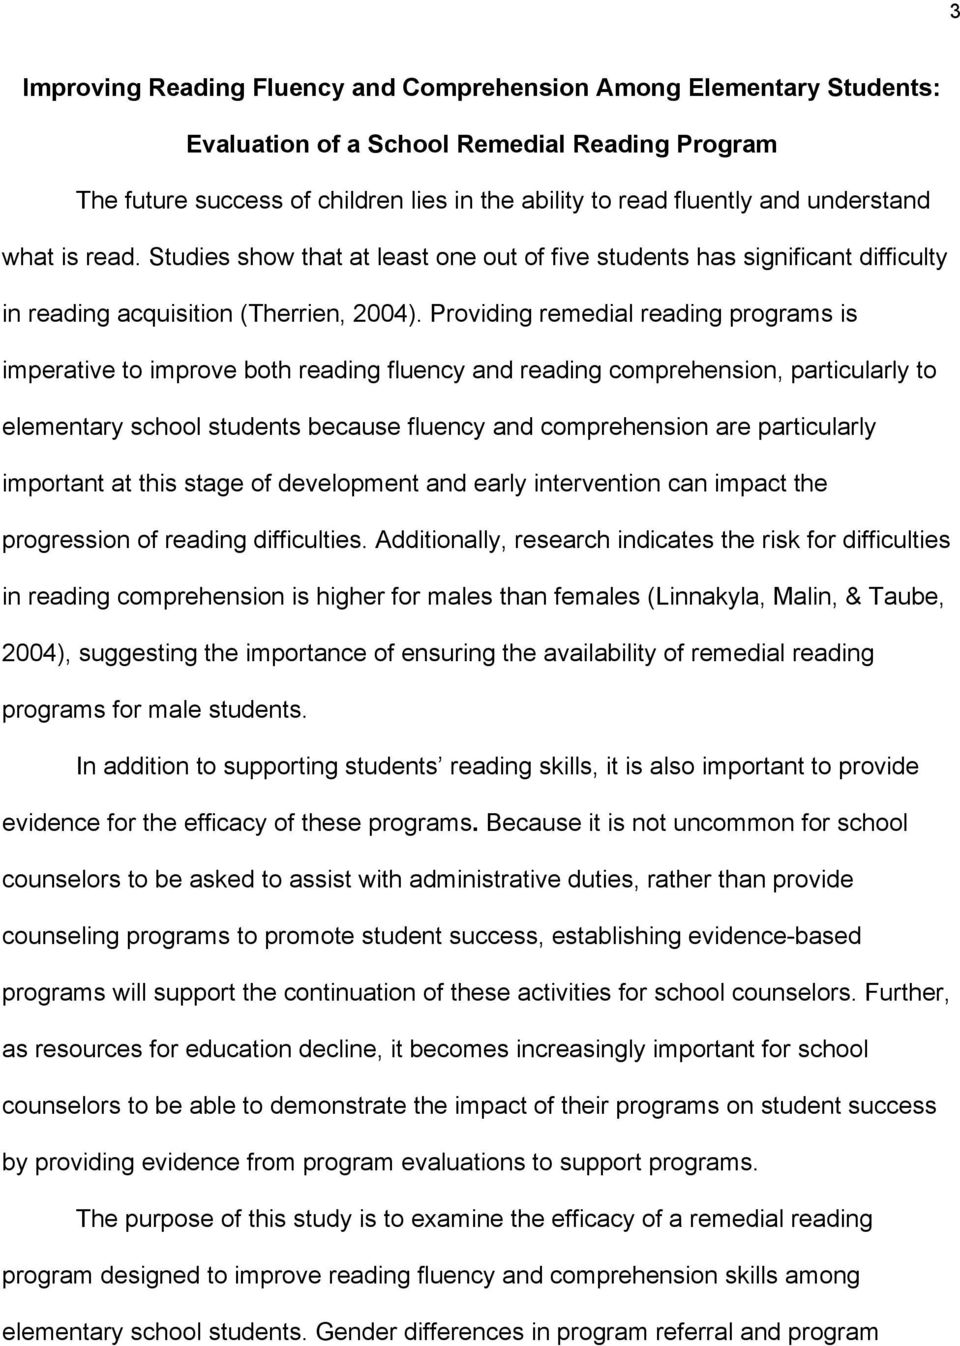 Improving Reading Fluency and Comprehension Among Elementary ...